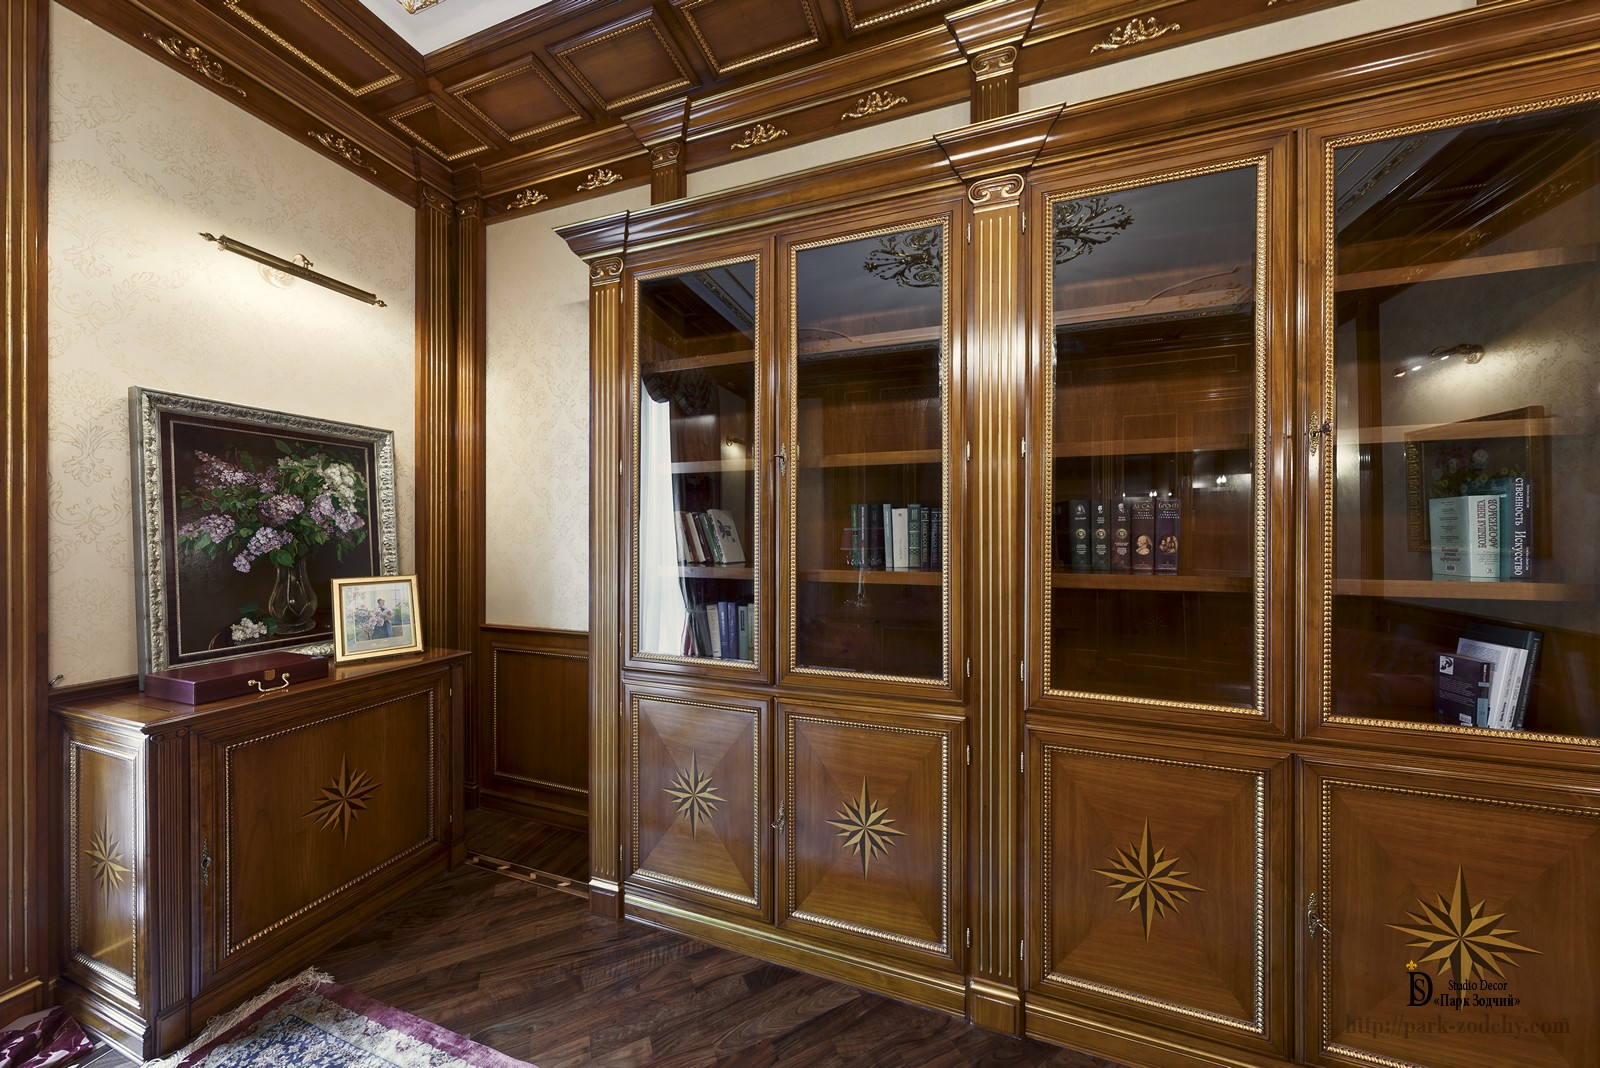 The interior of the Cabinet combines brown tones and red